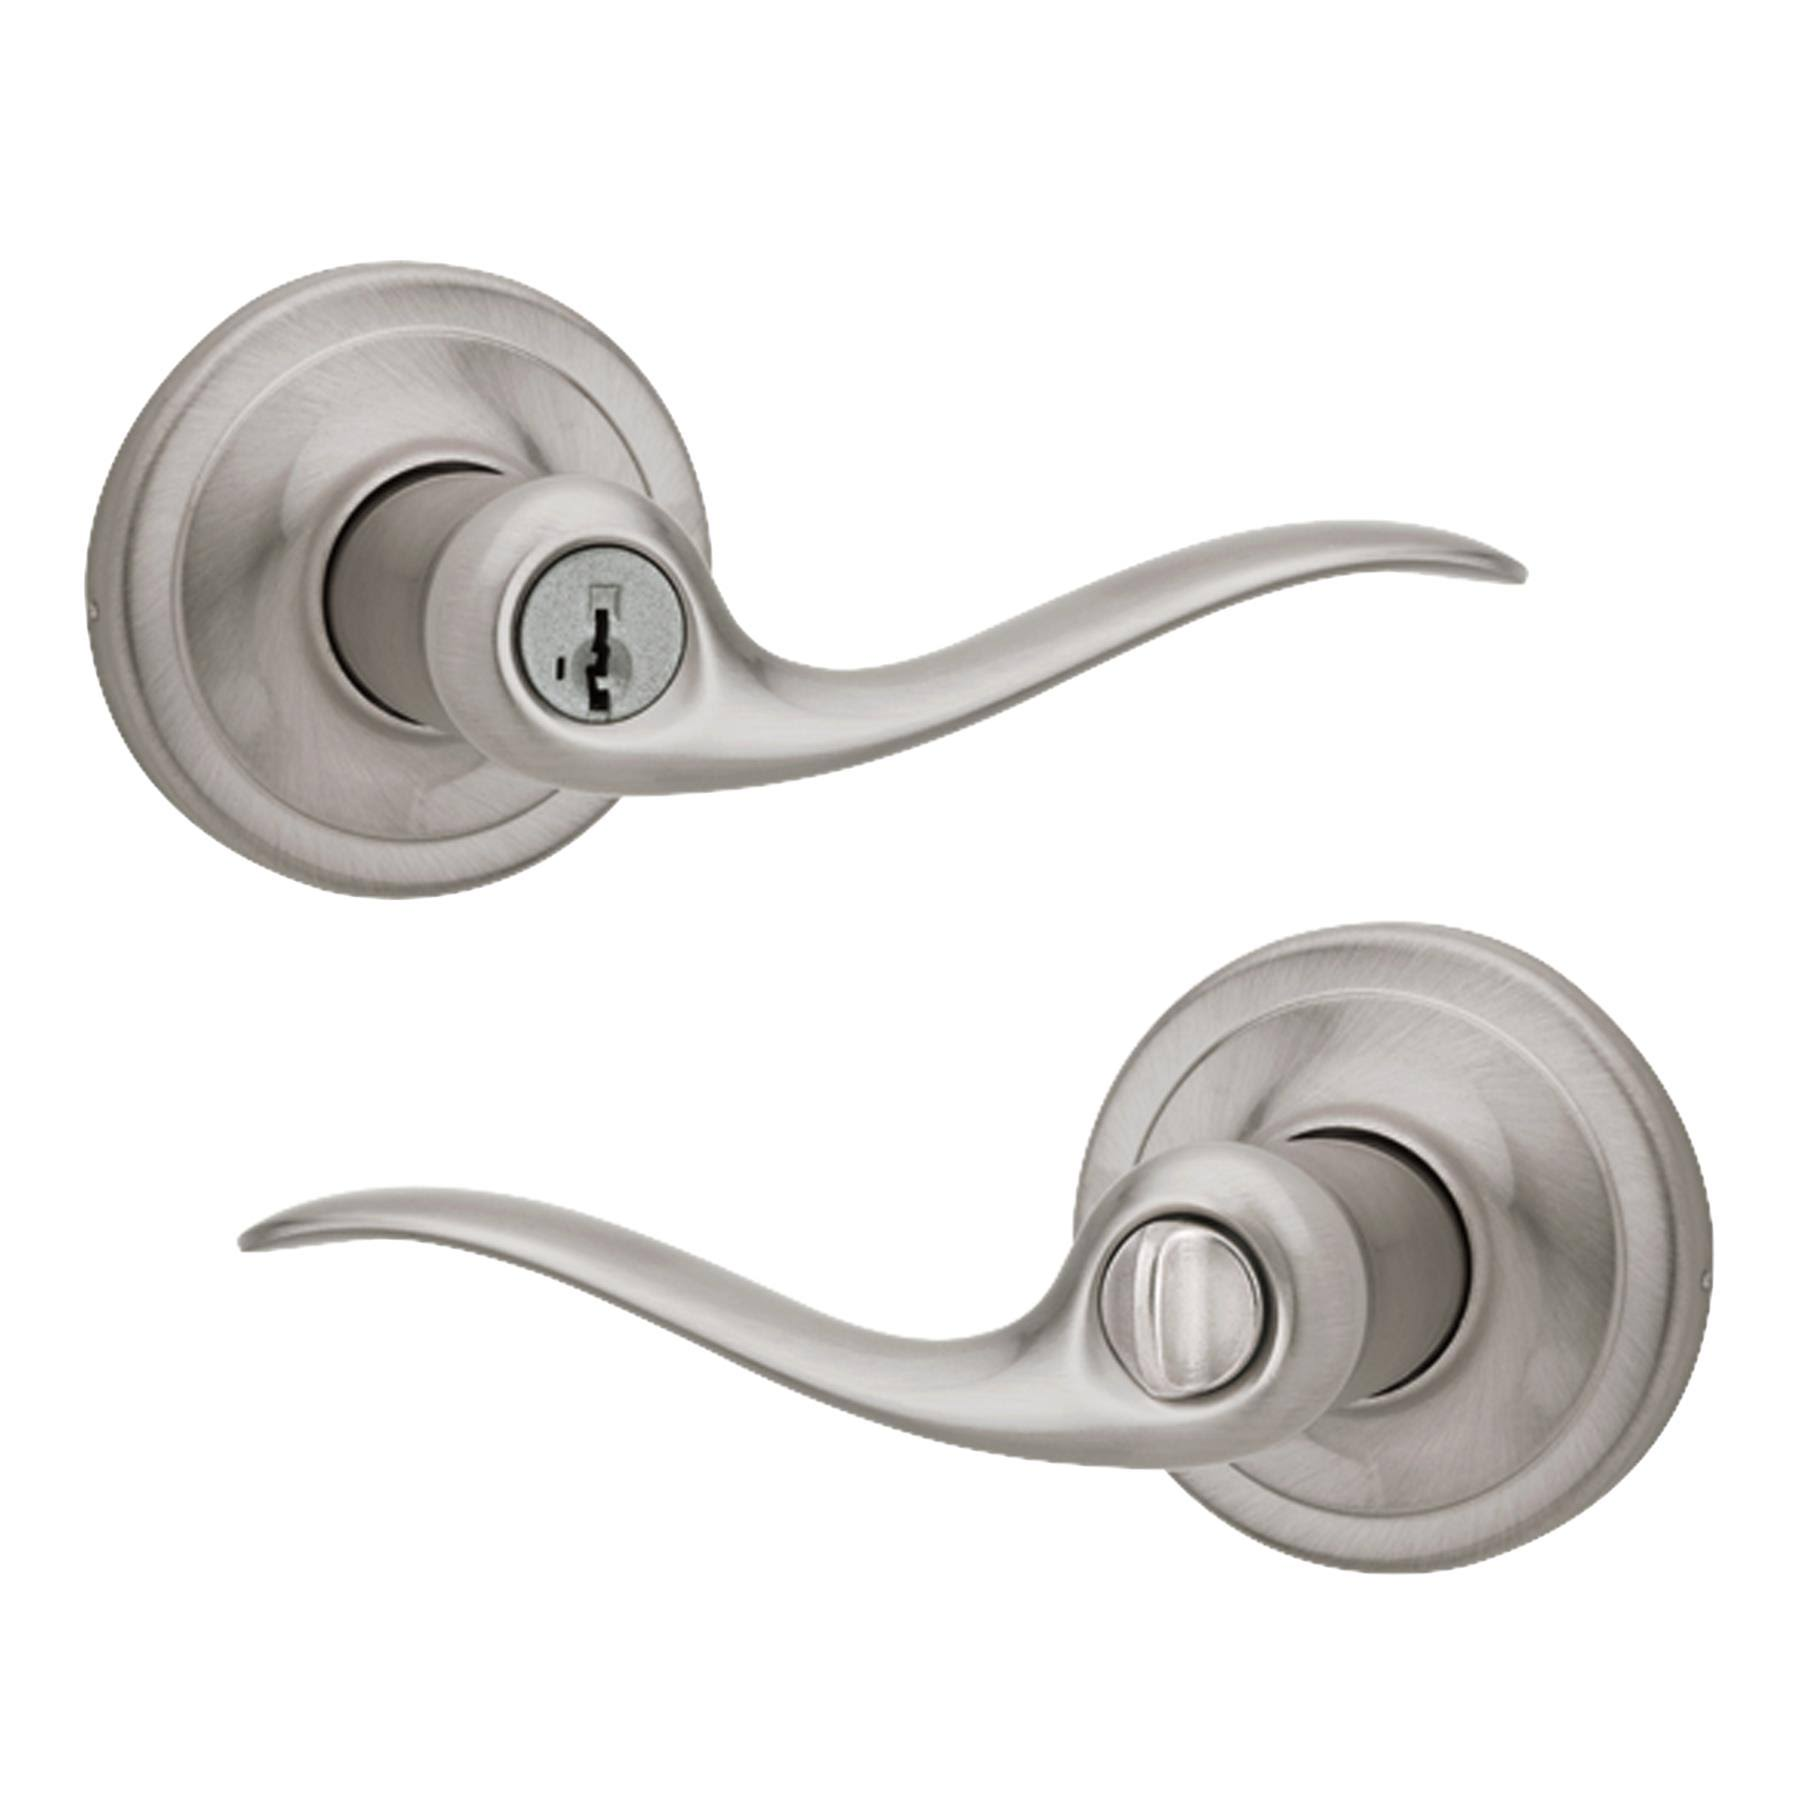 Kwikset Tustin Keyed Entry Lever - Satin Nickel